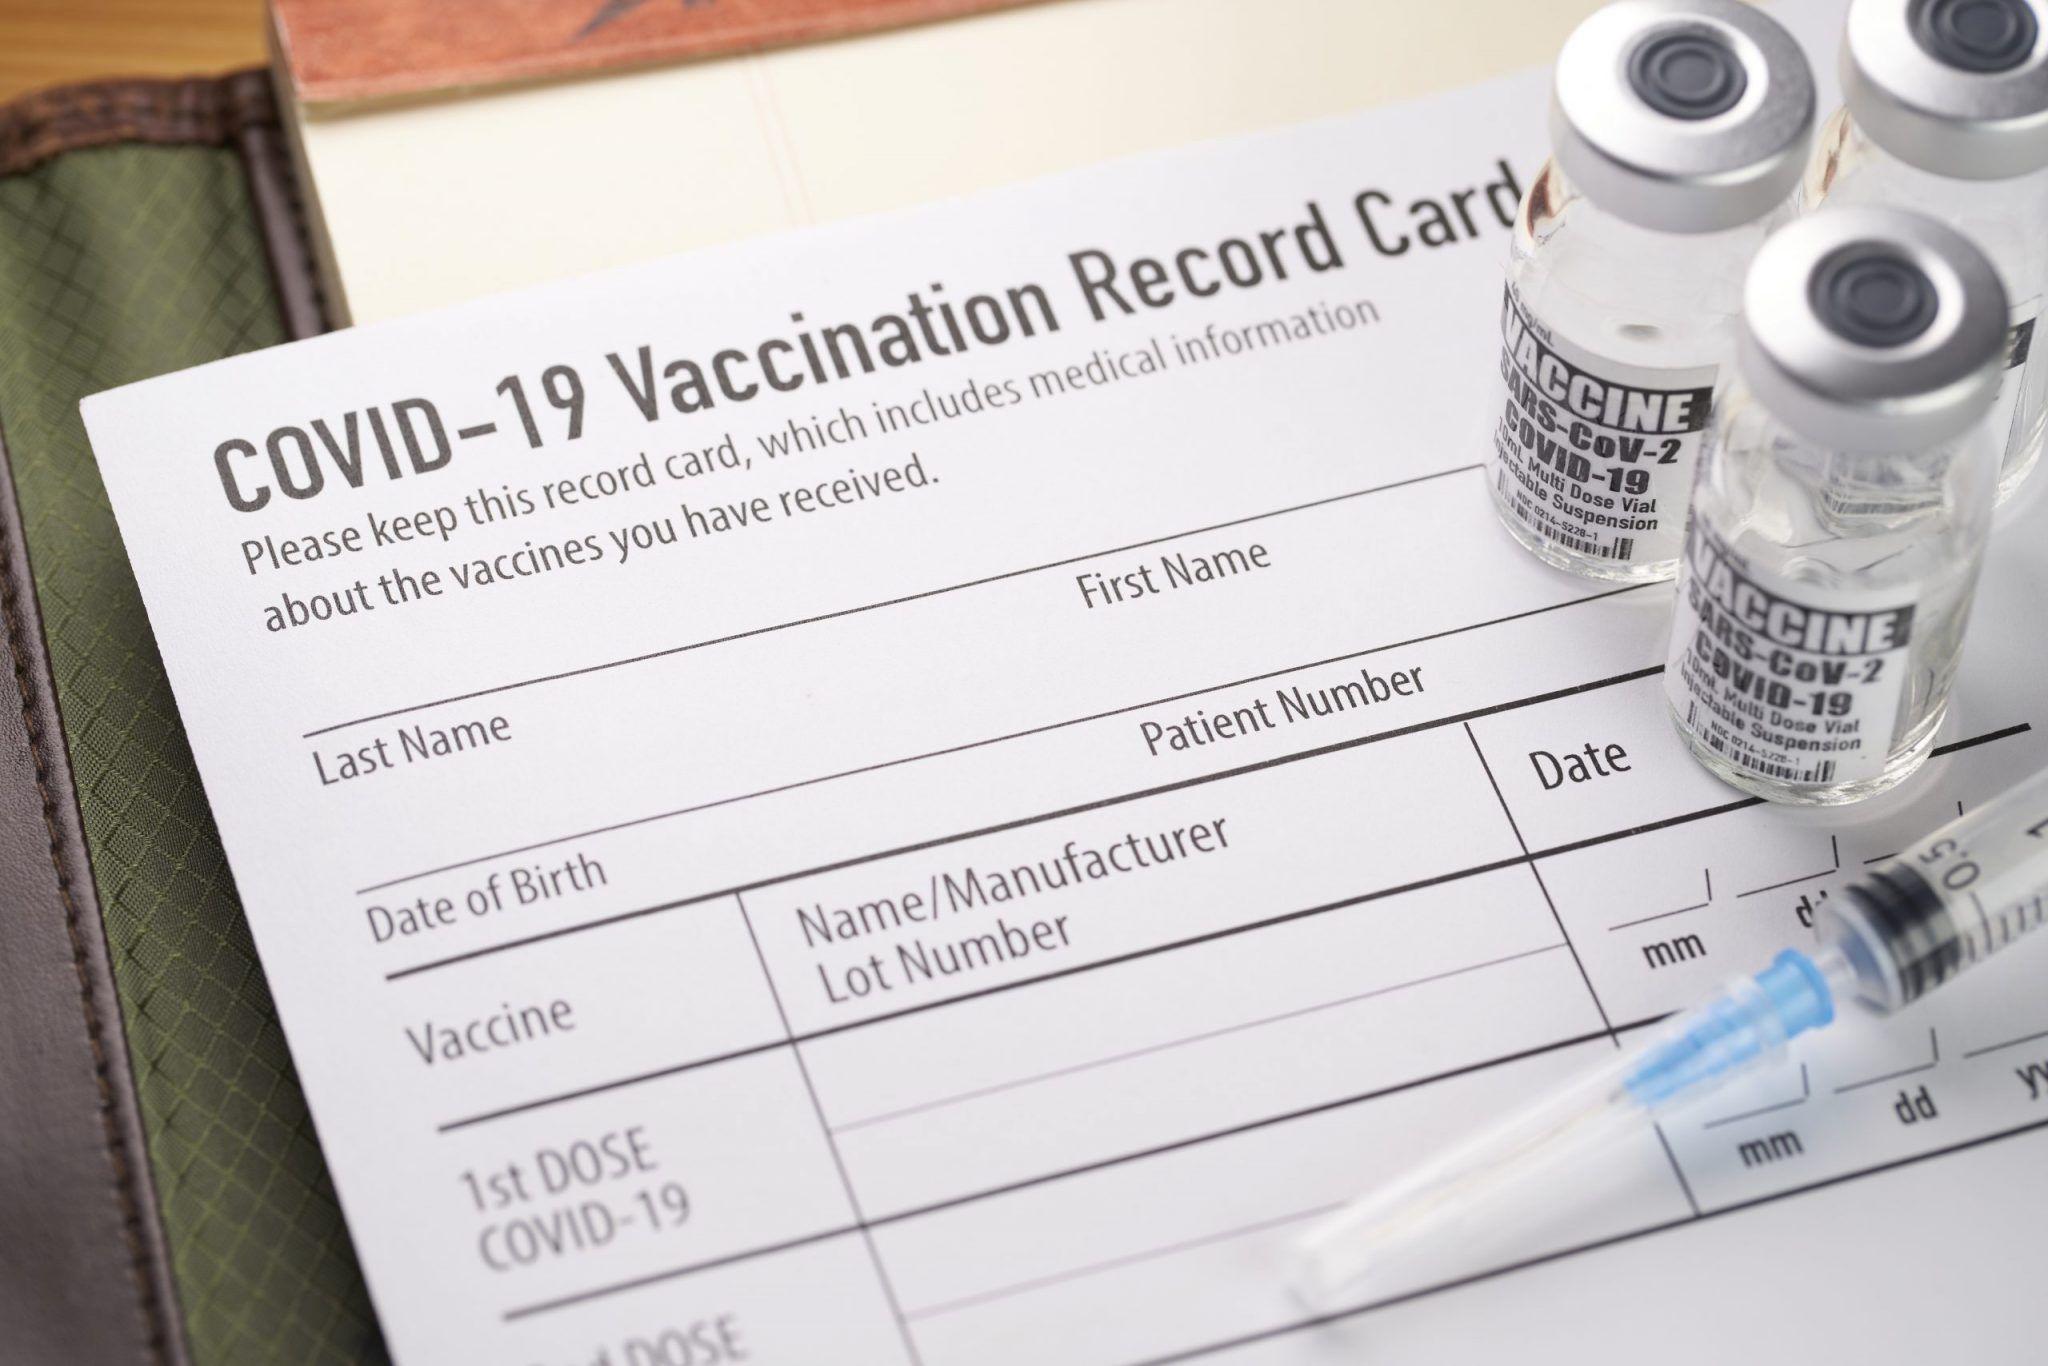 Covid-19 vaccination record card with vials and syringe, Article 92.